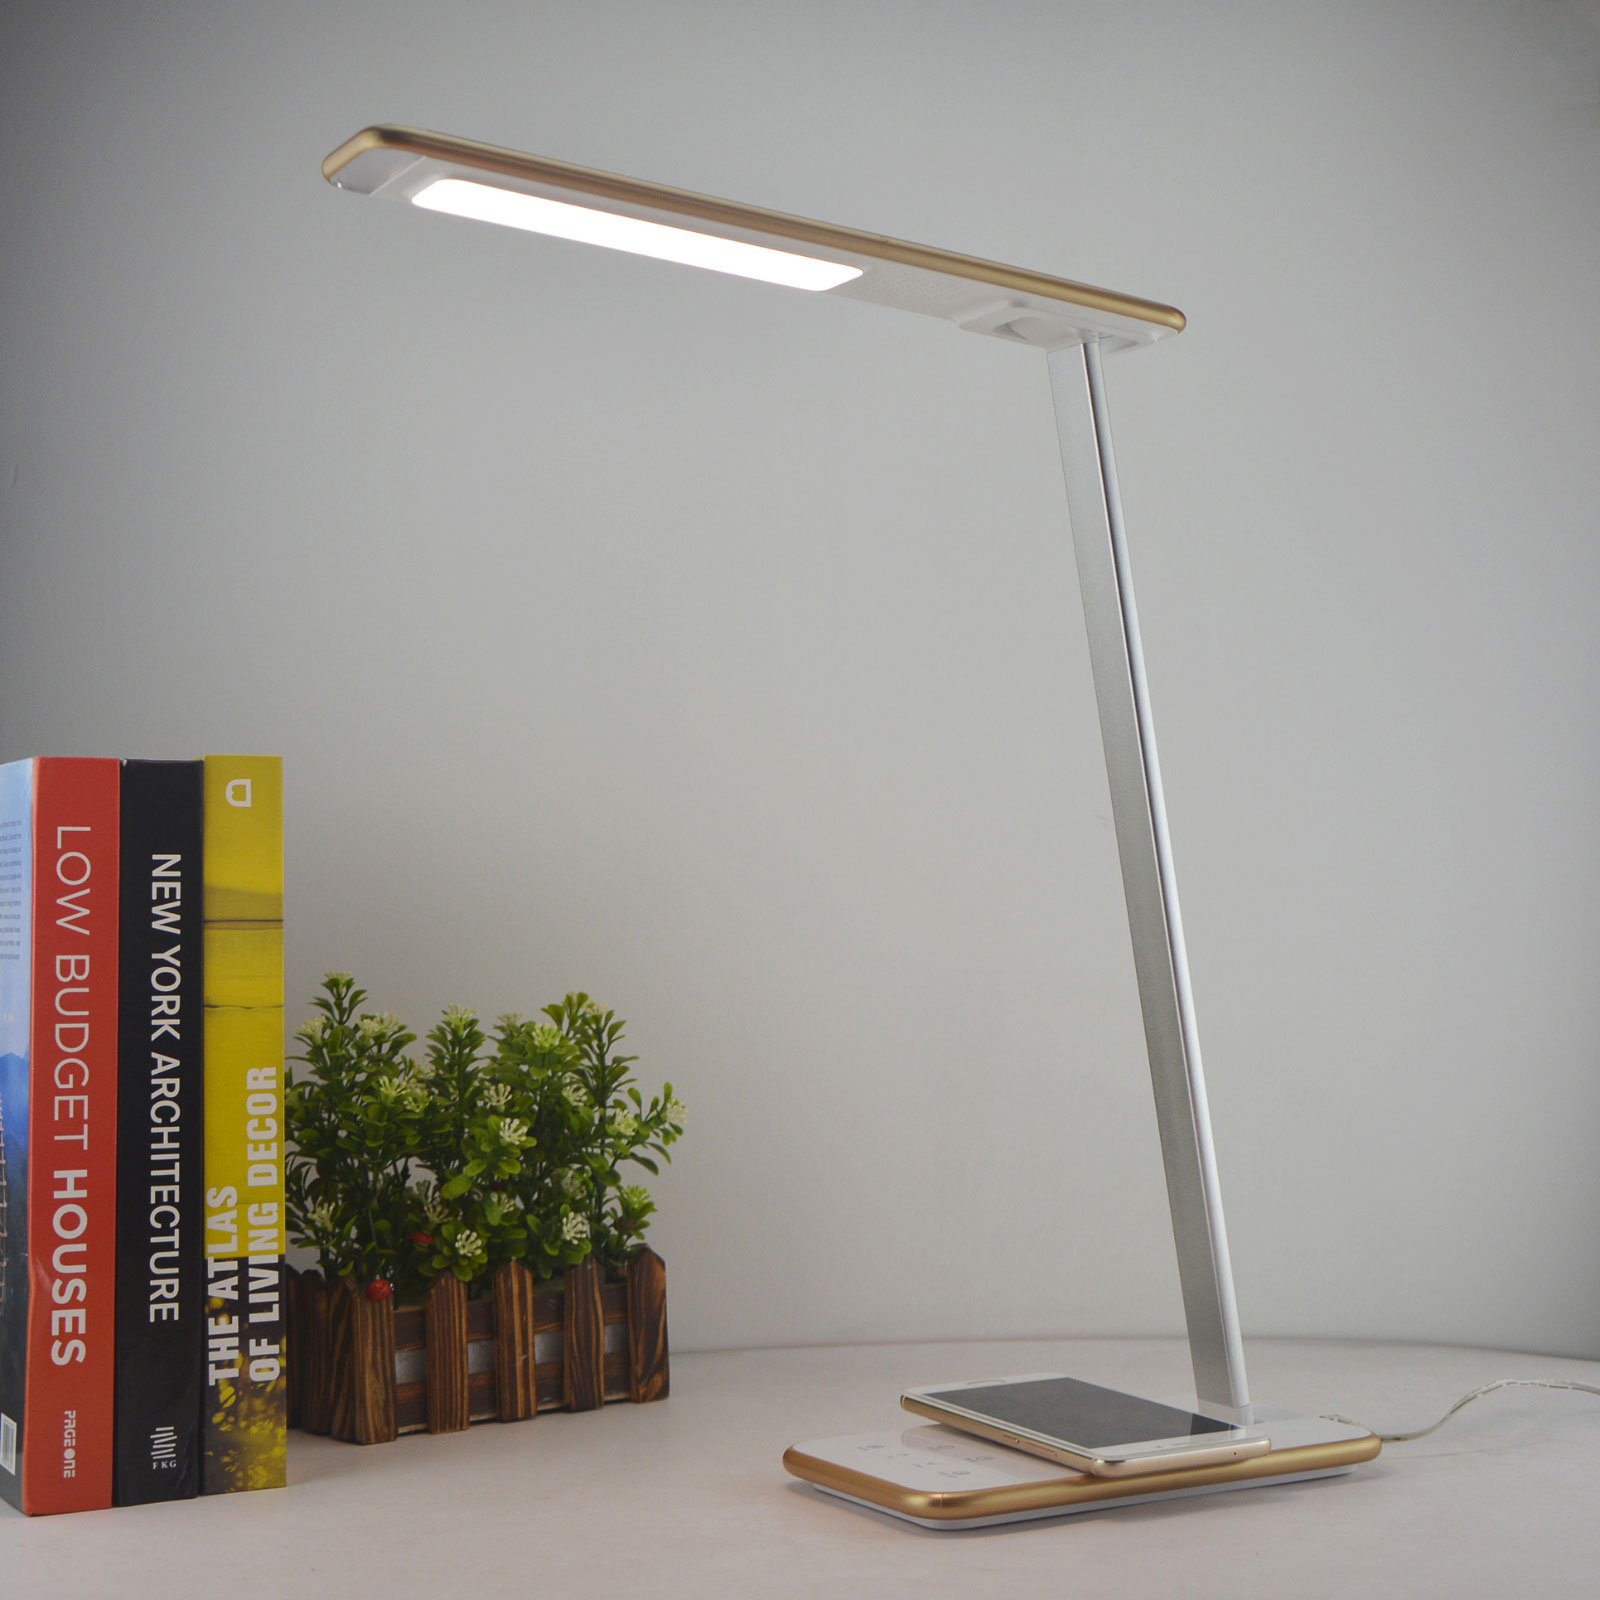 Lampe de bureau LED Orbit avec induction, dorée